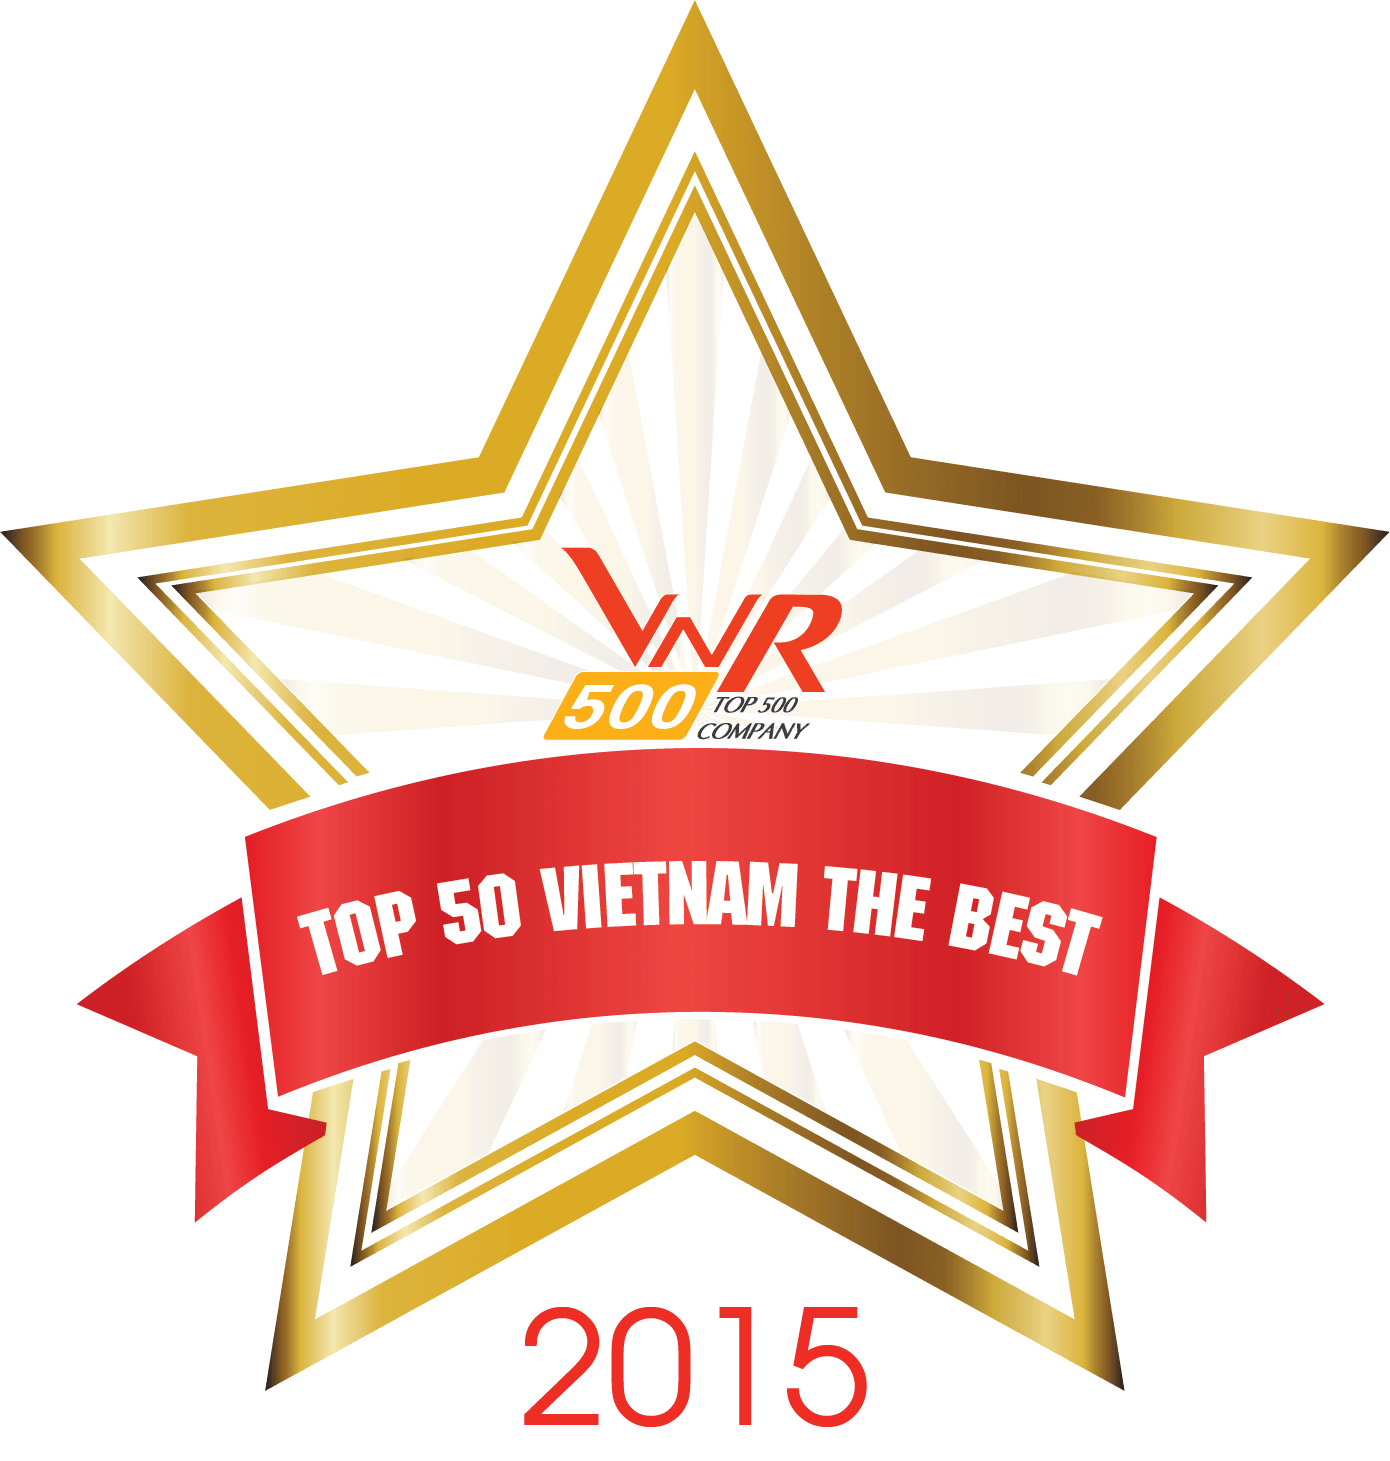 Top 50 Vietnam The Best 2015